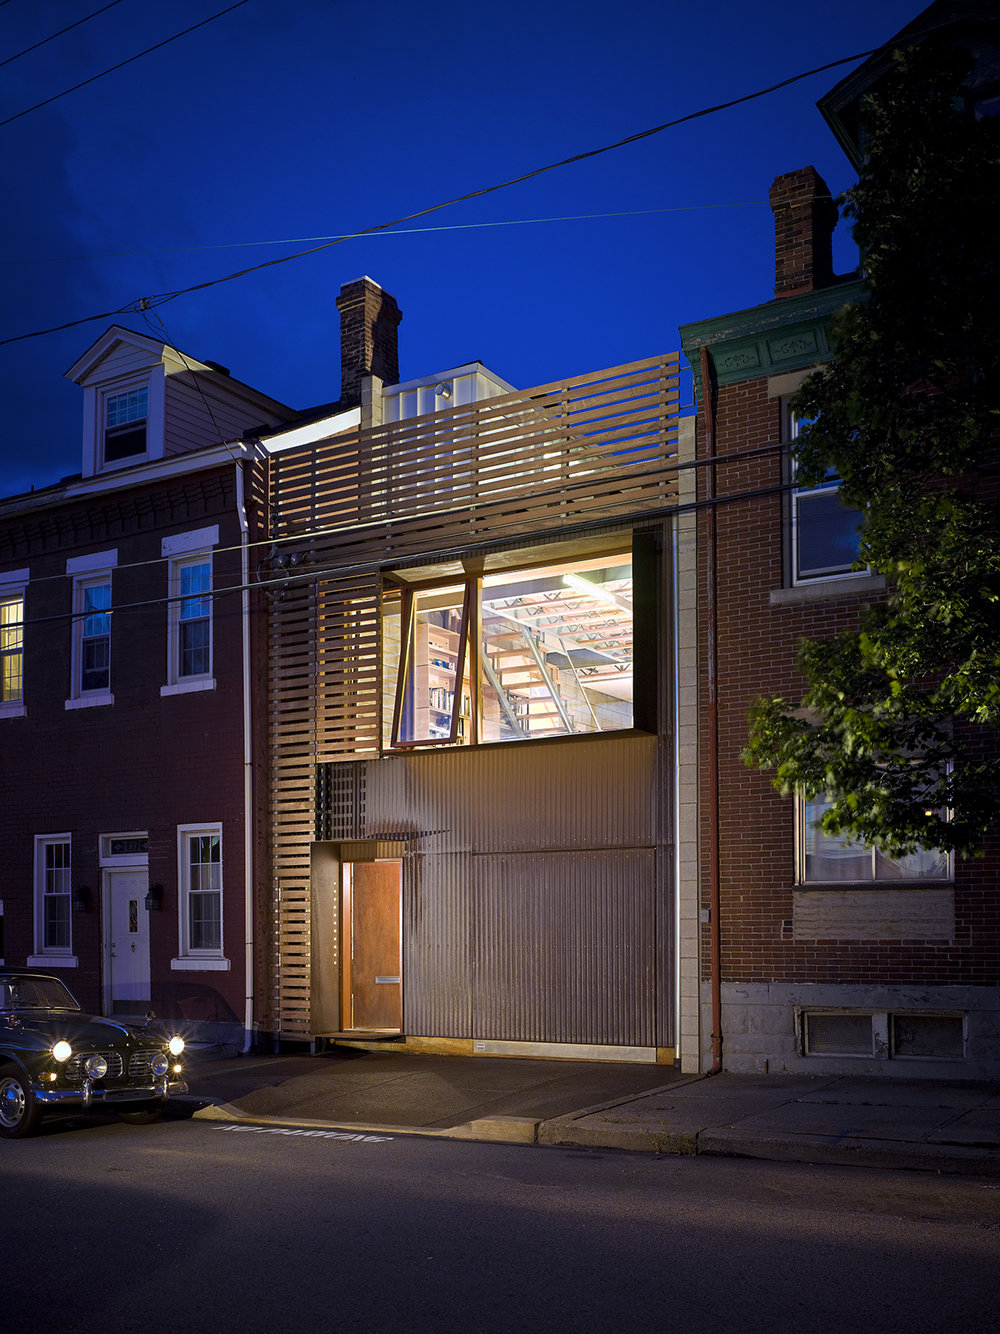 Live/Work Studio II shows a reinterpretation of a typical house in Pittsburgh's South Side neighborhood. Photo by Ed Massery.